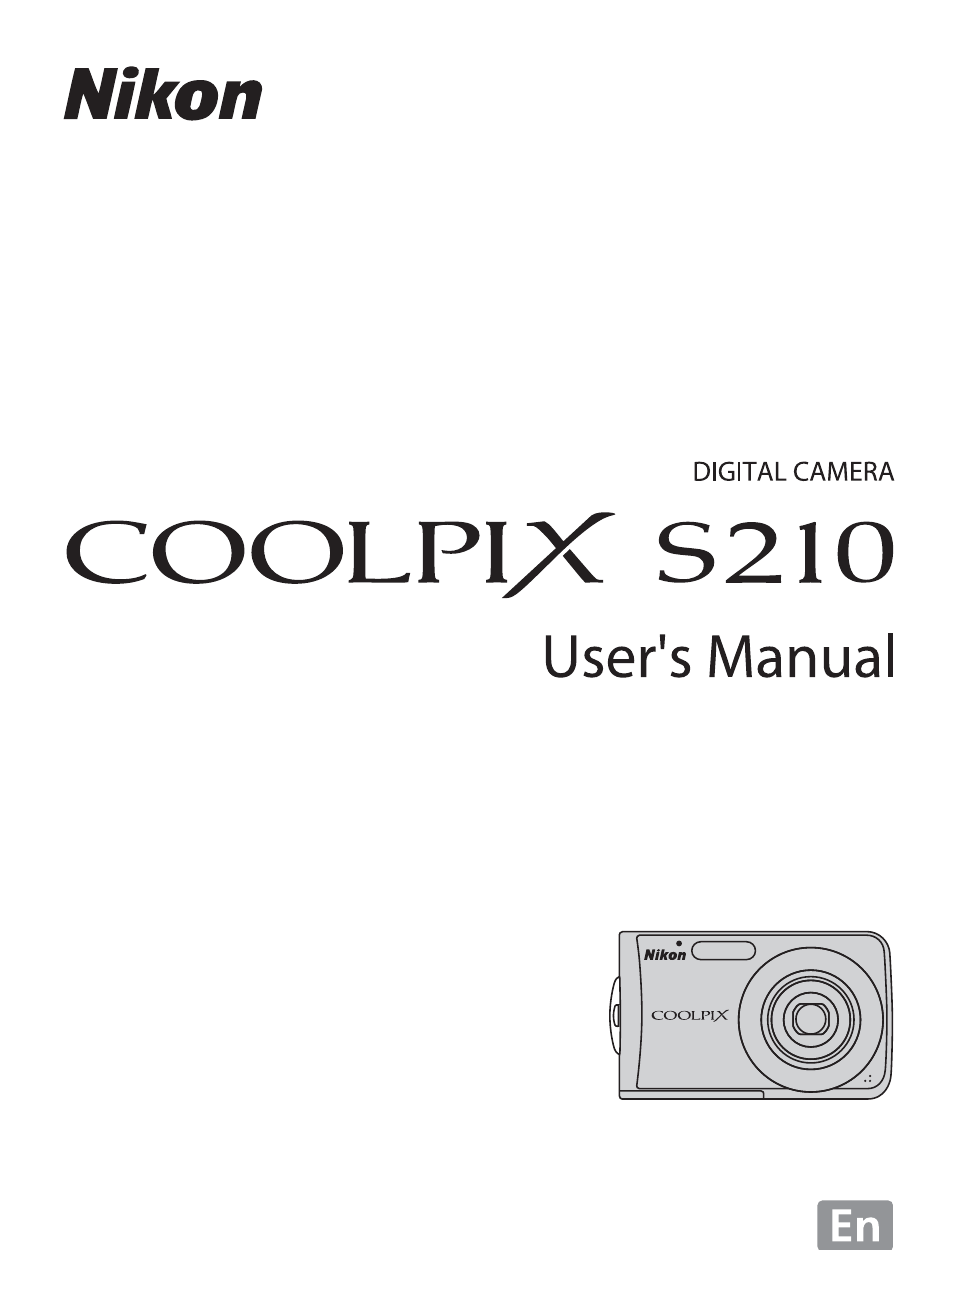 nikon coolpix s210 user manual 148 pages rh manualsdir com Nikon Coolpix S7c nikon coolpix s210 manual